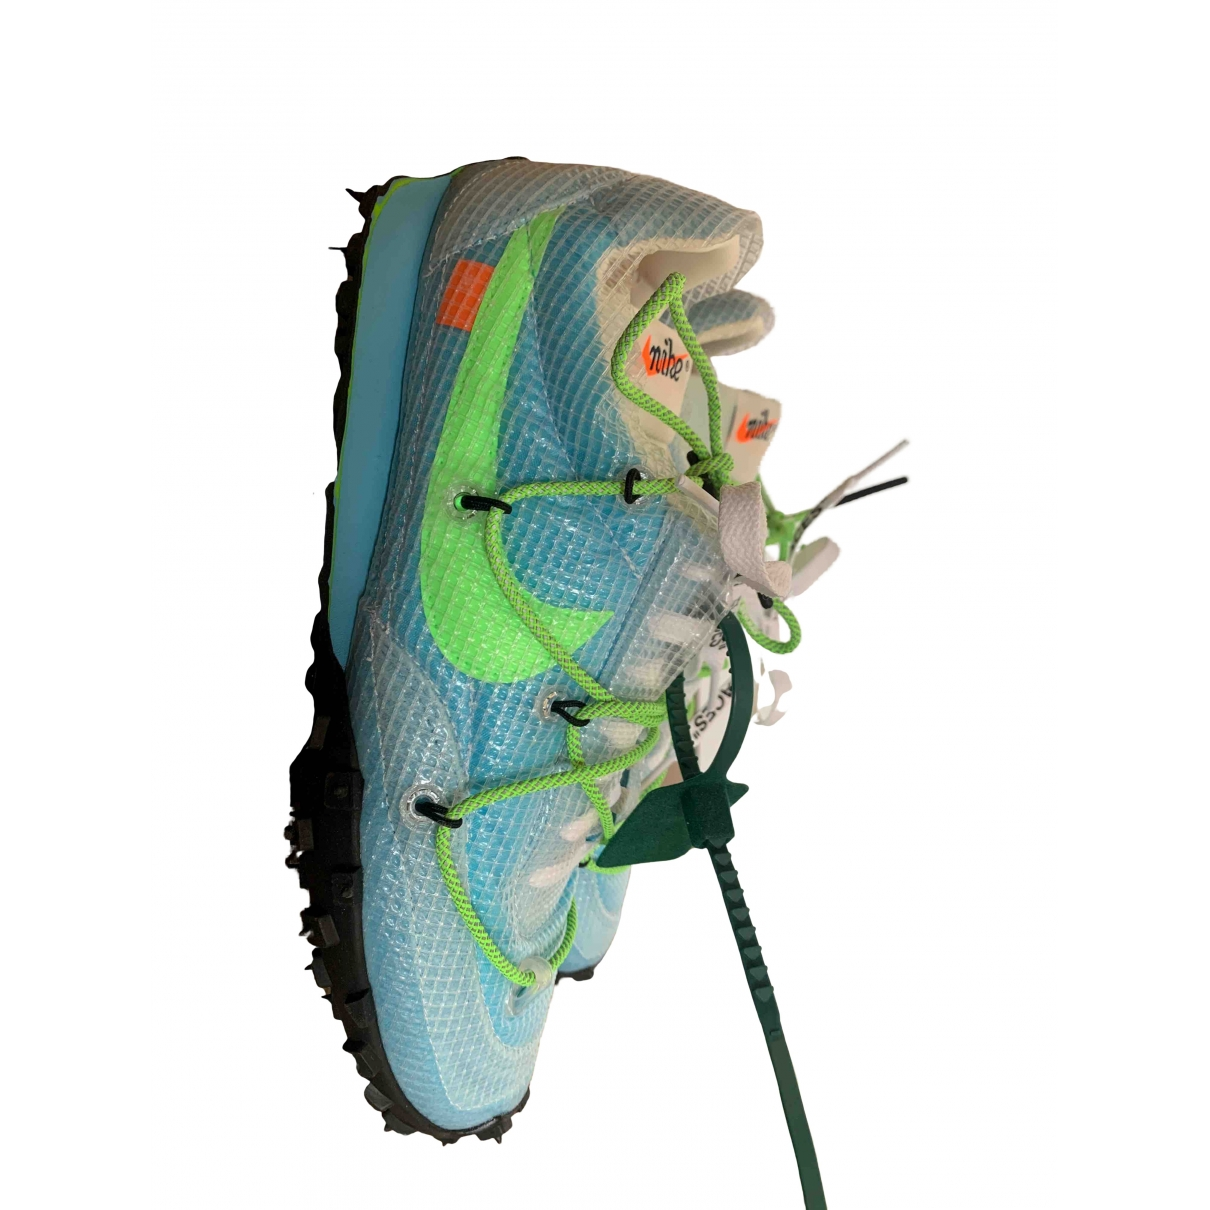 Nike X Off-white Waffle Racer Sneakers in  Tuerkis Leinen